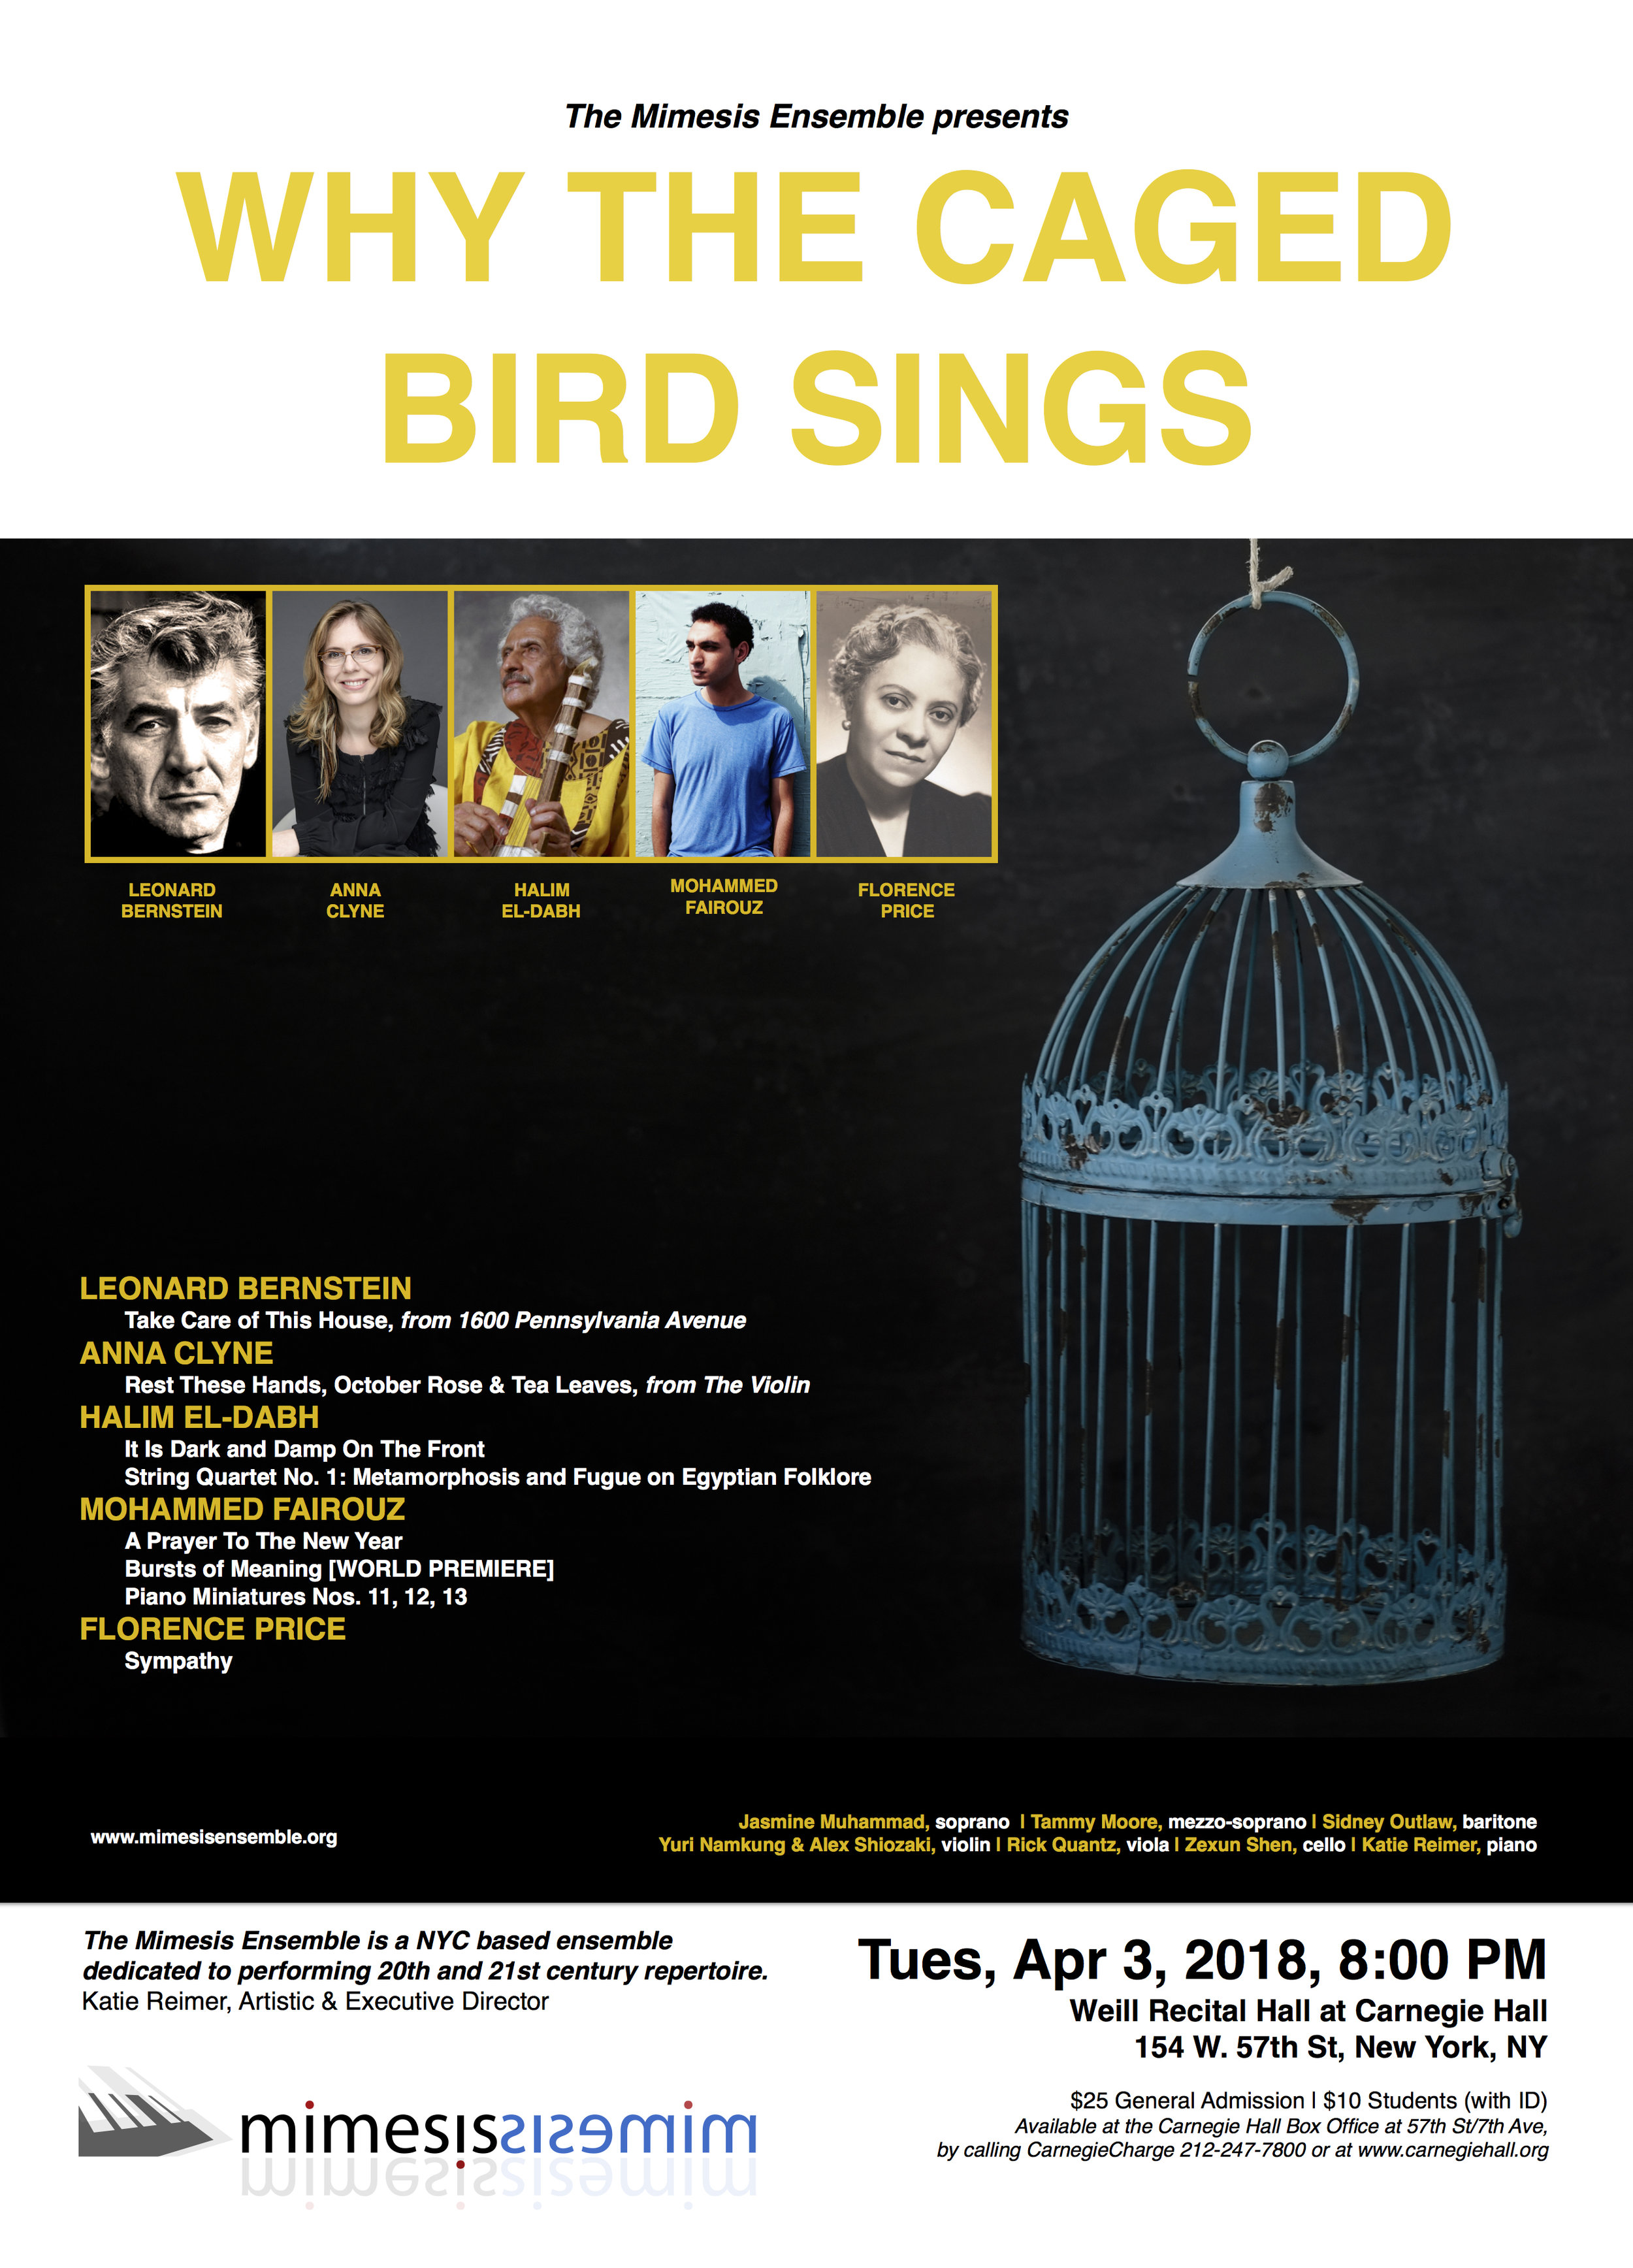 Apr 3, 2018 Why the Caged Bird Sings - LARGE POSTER FOR CARNEGIE JPEG.jpg